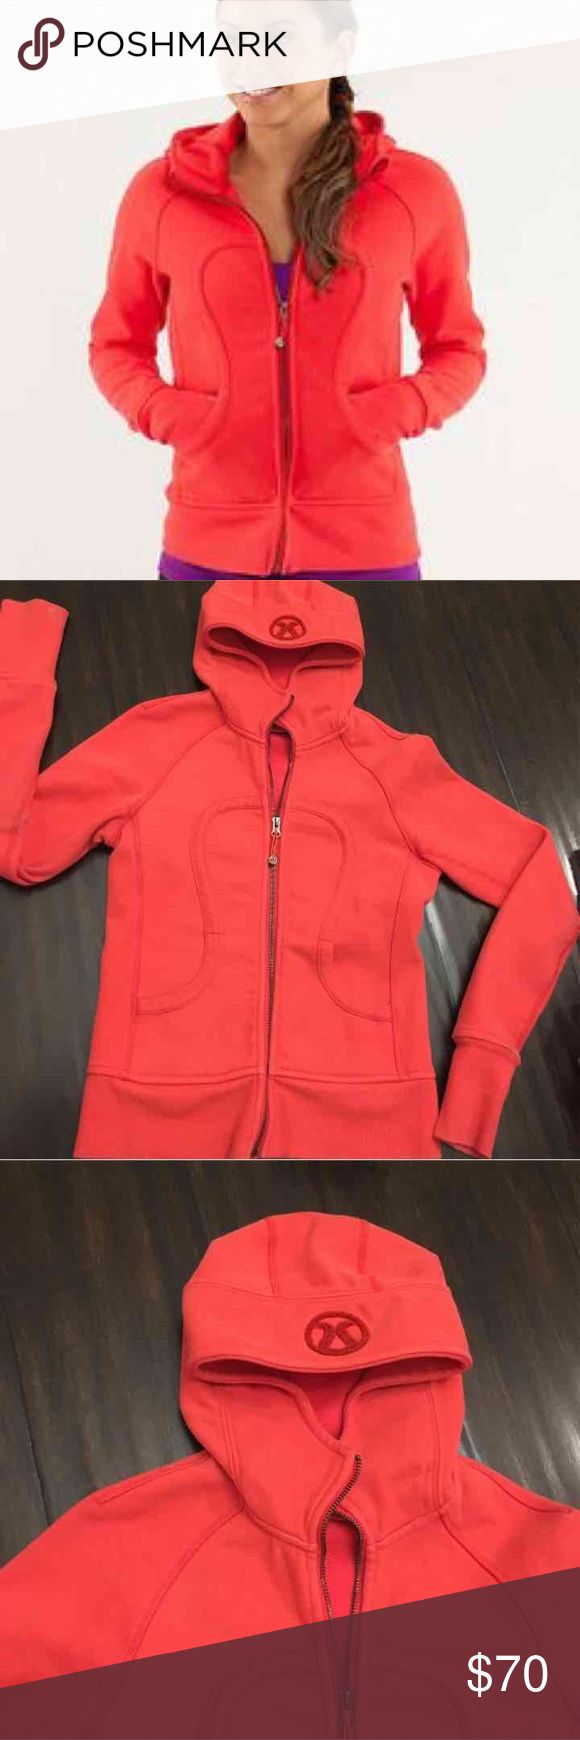 Lululemon scuba hoodie II This is a red lululemon scuba hoodie size 4! Has never been worn. It is in great condition reason for selling is it a little too small for me. lululemon athletica Tops Sweatshirts & Hoodies